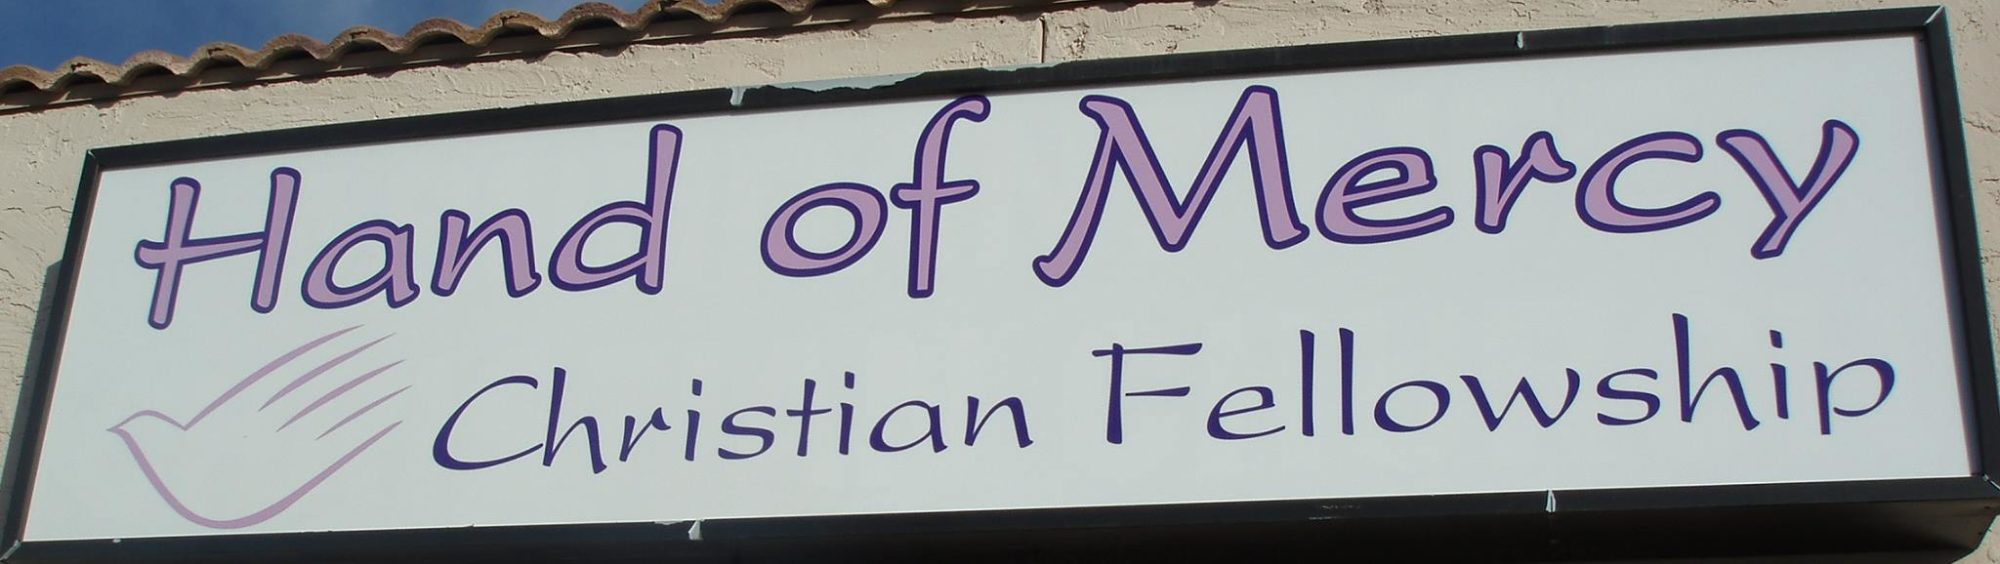 Hand of Mercy Christian Fellowship